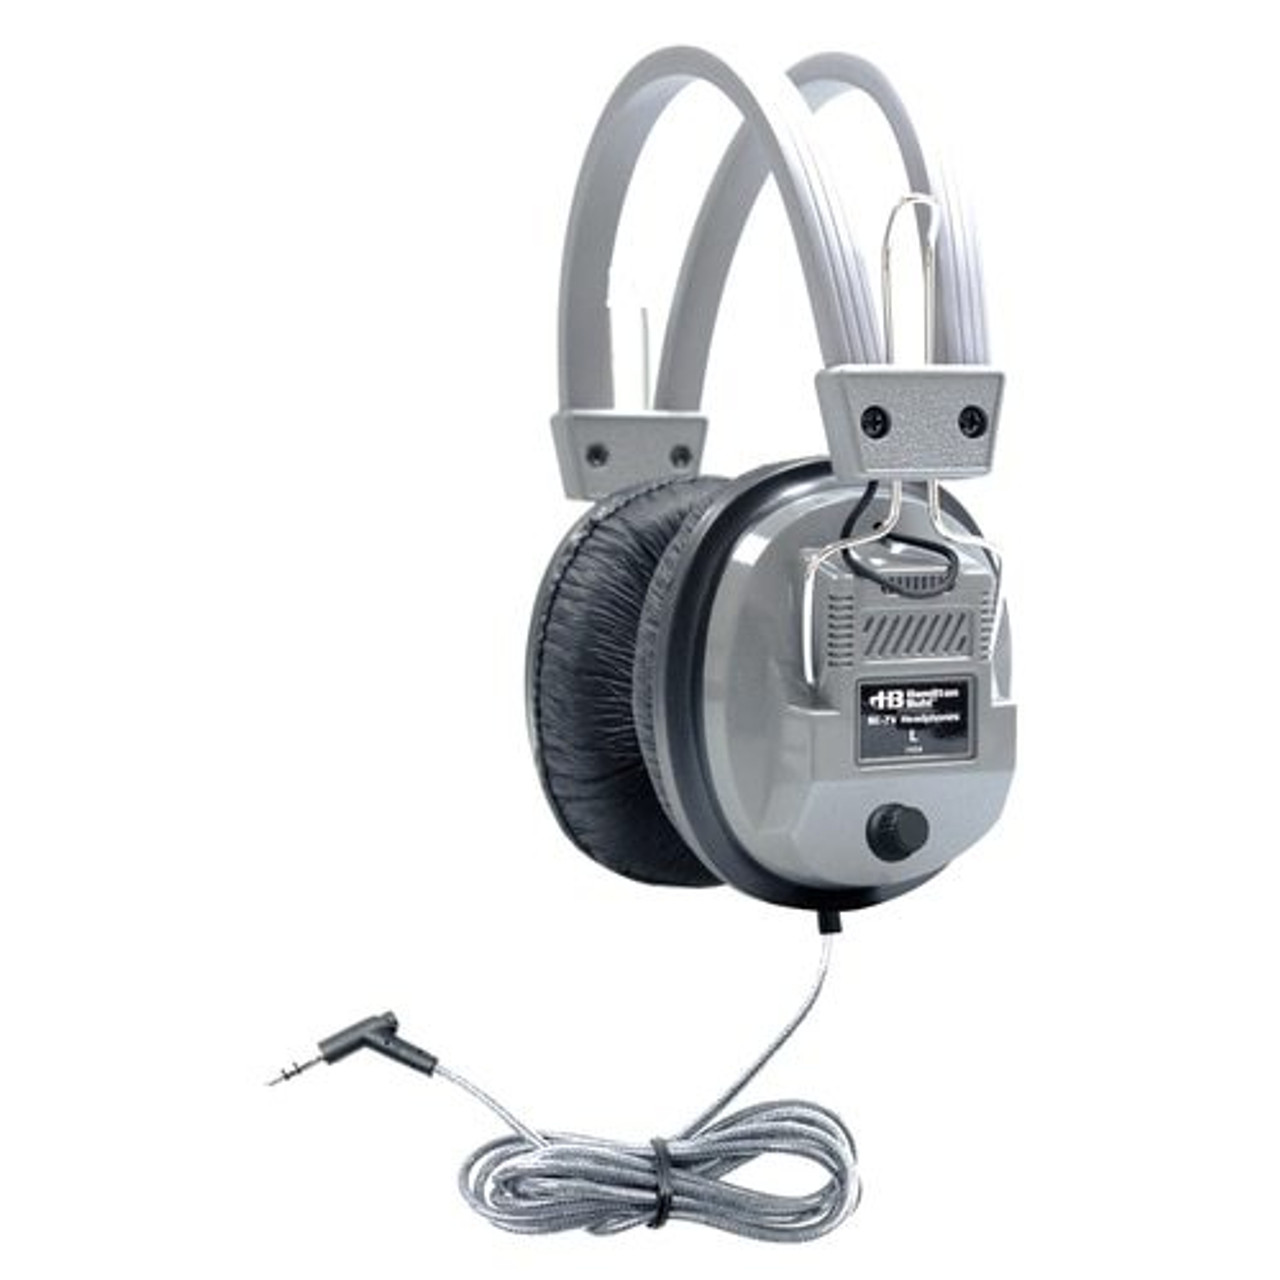 2cde8dce0cb SchoolMate Deluxe Stereo Headphone with 3.5mm Plug, Volume